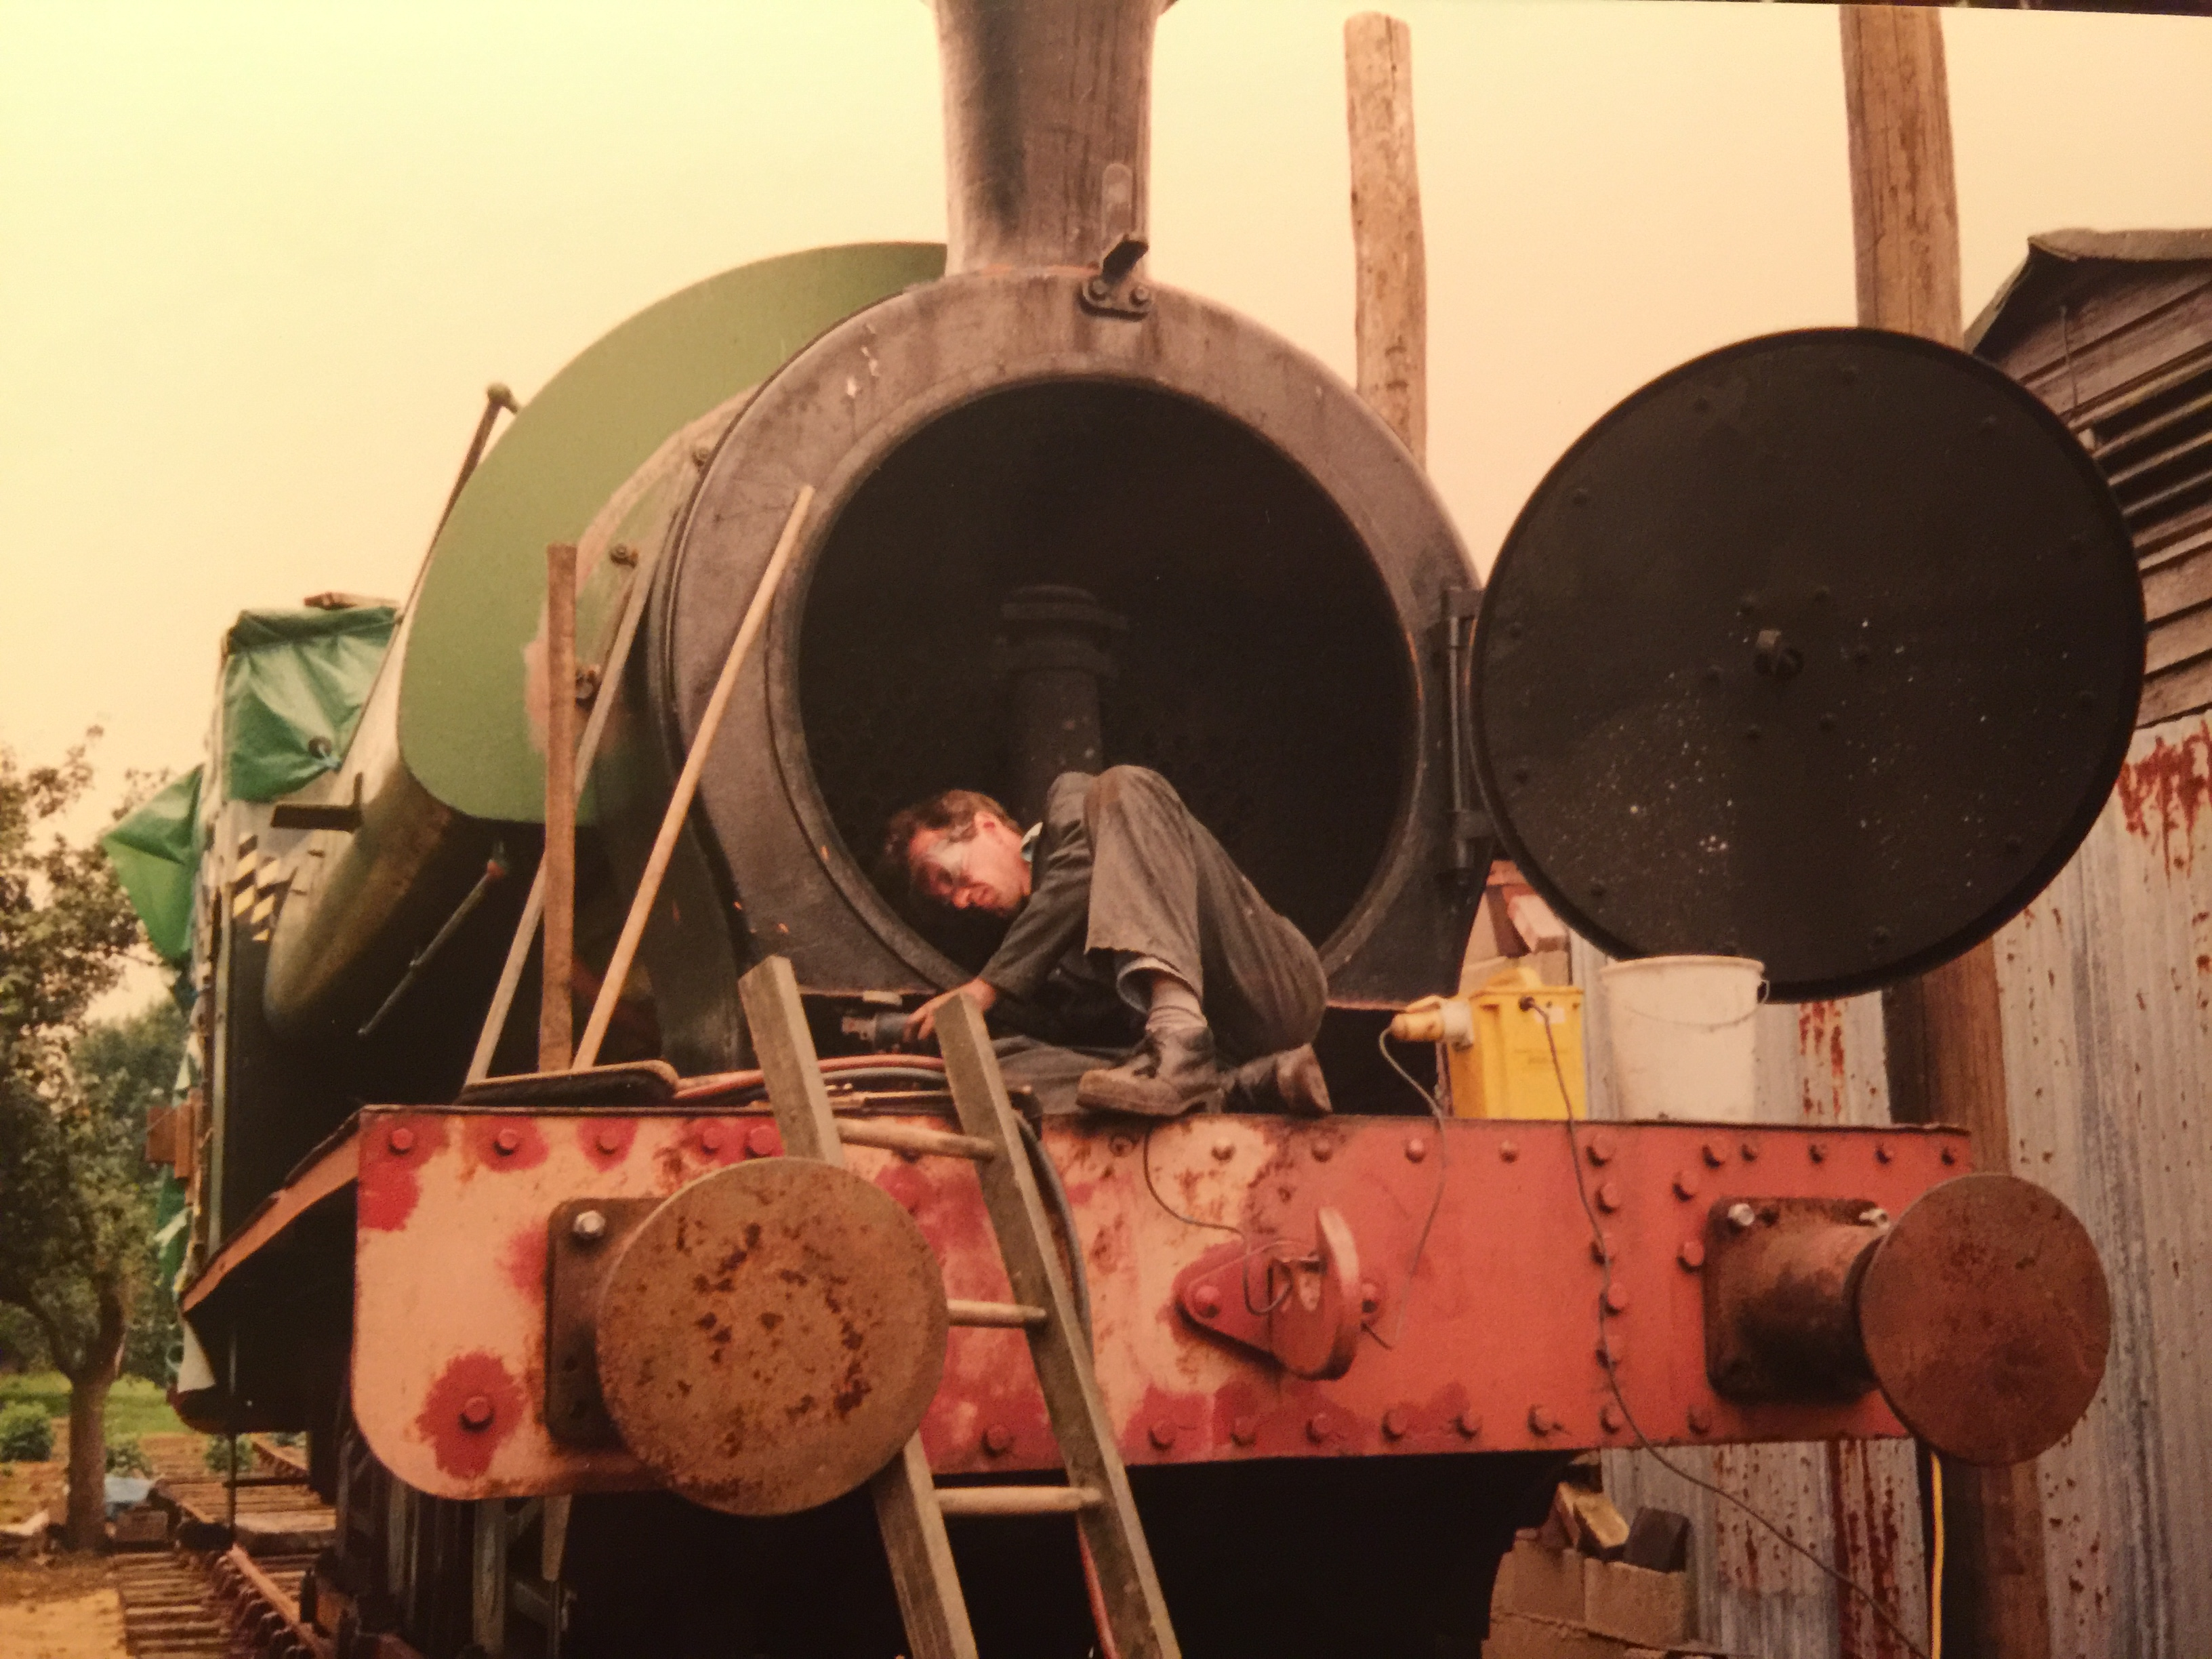 Working in the smokebox at Suffolk Steam as an engineer